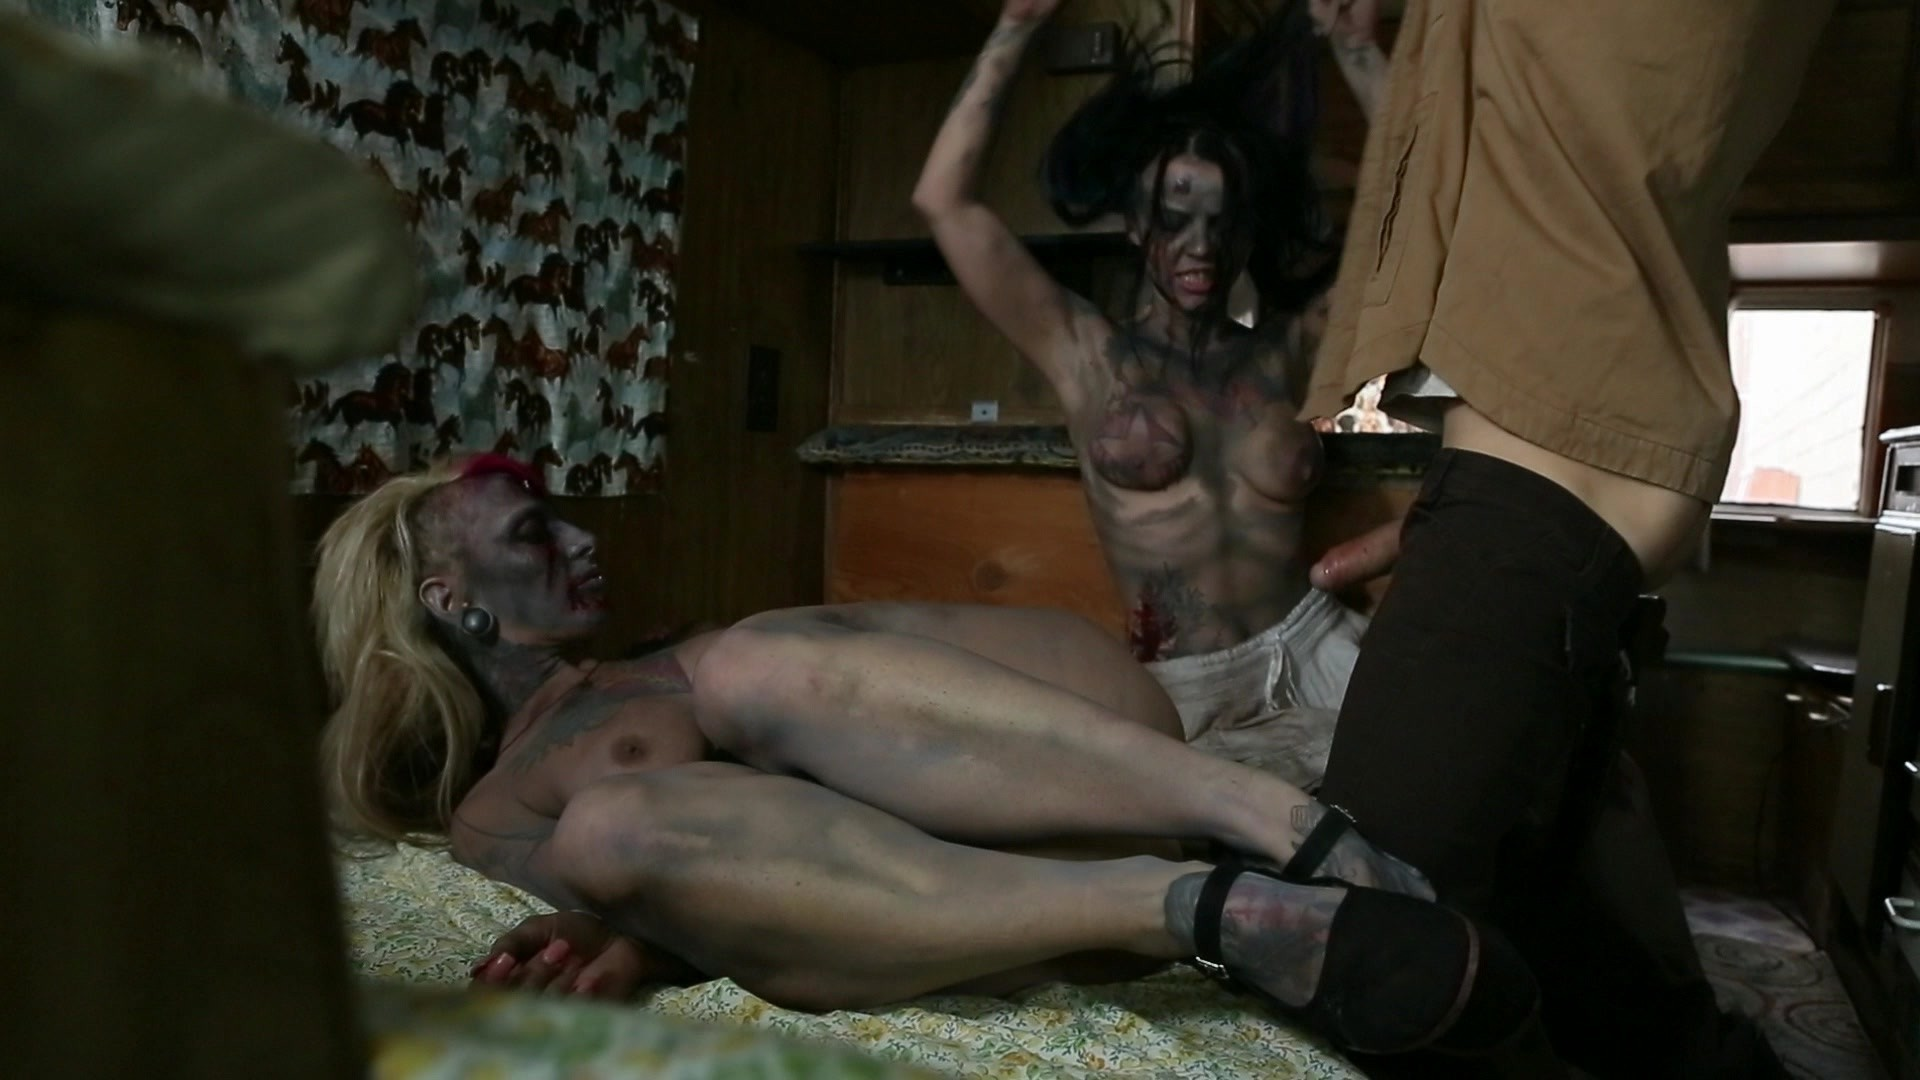 zombie-movies-nude-scenes-videos-porno-amateur